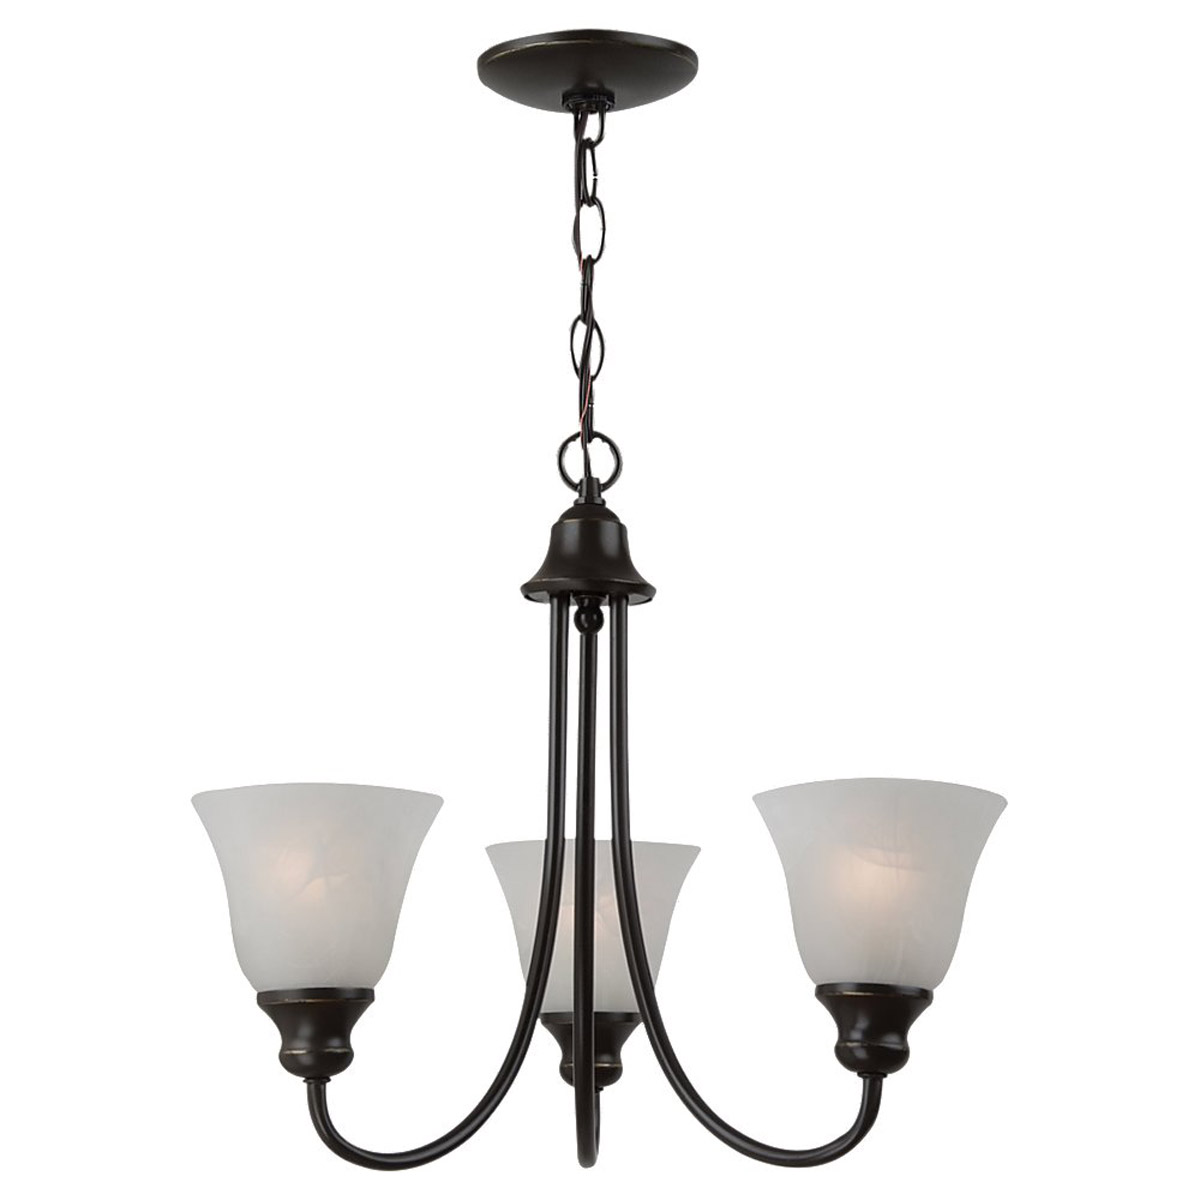 Sea Gull 35939BLE-782 Windgate 3 Light 20 inch Heirloom Bronze Chandelier Ceiling Light in Fluorescent photo